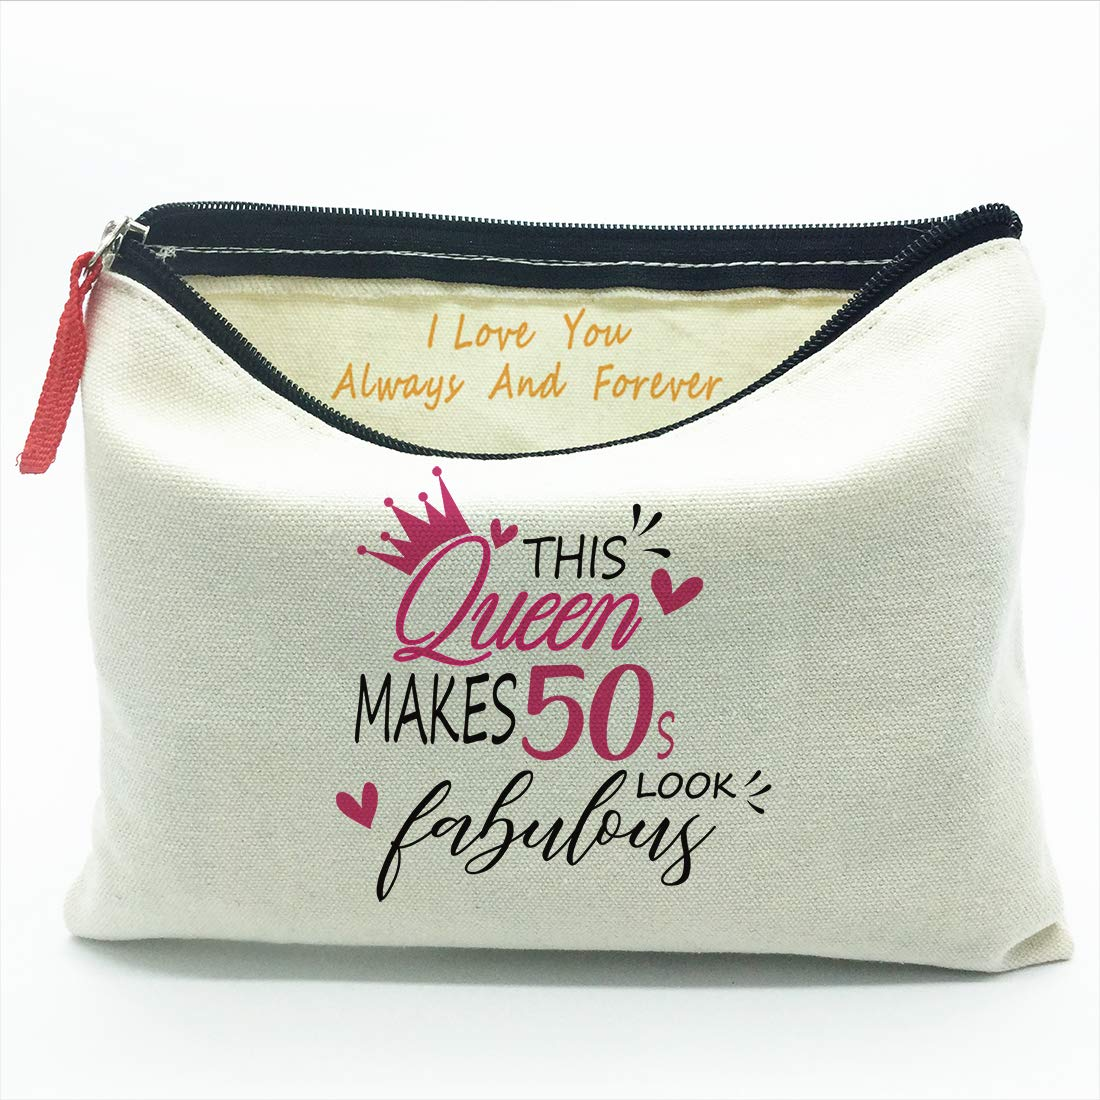 50th - 59th Birthday gift,Queen makes 50s fabulous,Gifts for Women,Canvas Makeup Cosmetic Bag,50-59 Year Old Presents,Gift for Mom Grandma Wife Lady